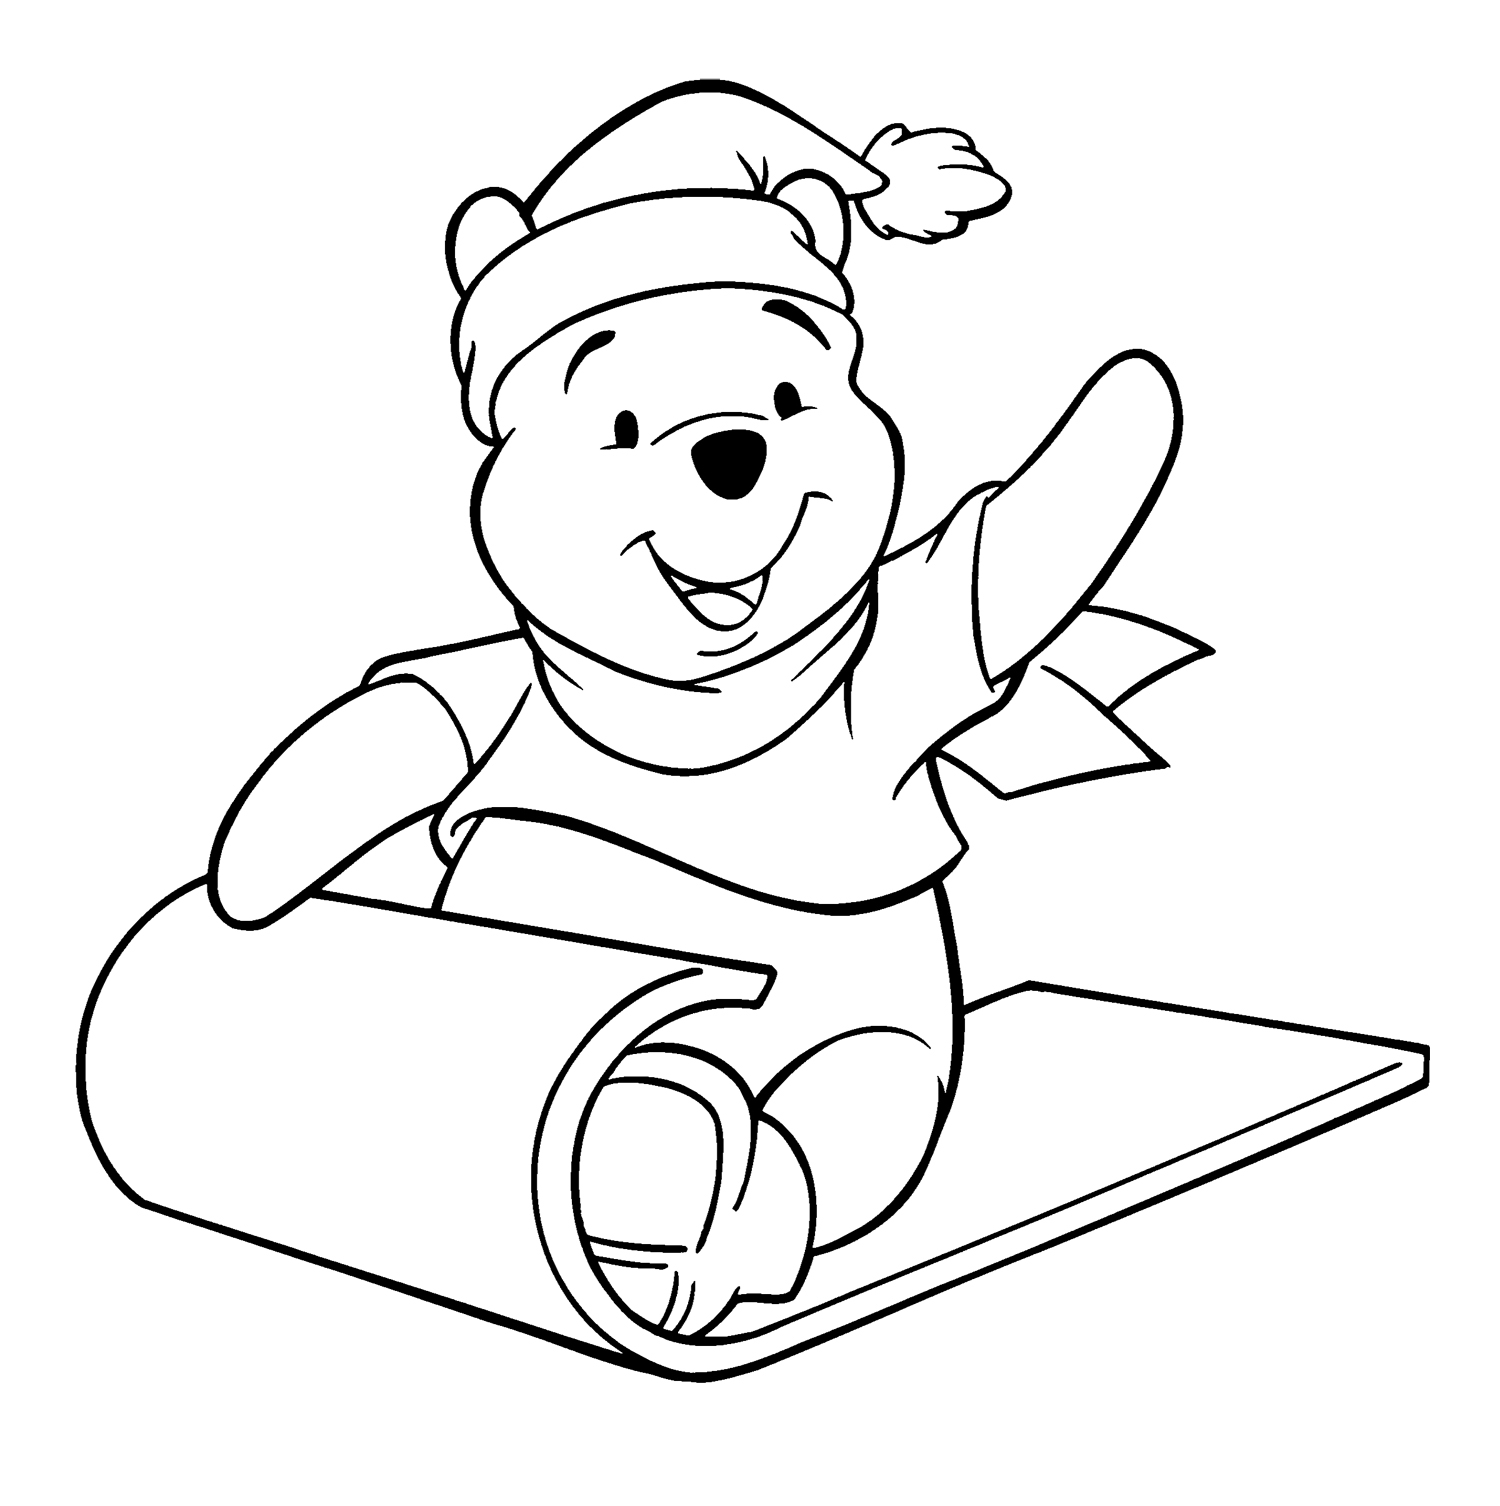 1500x1506 Winnie The Pooh Christmas Coloring Pages Preschool For Good Draw